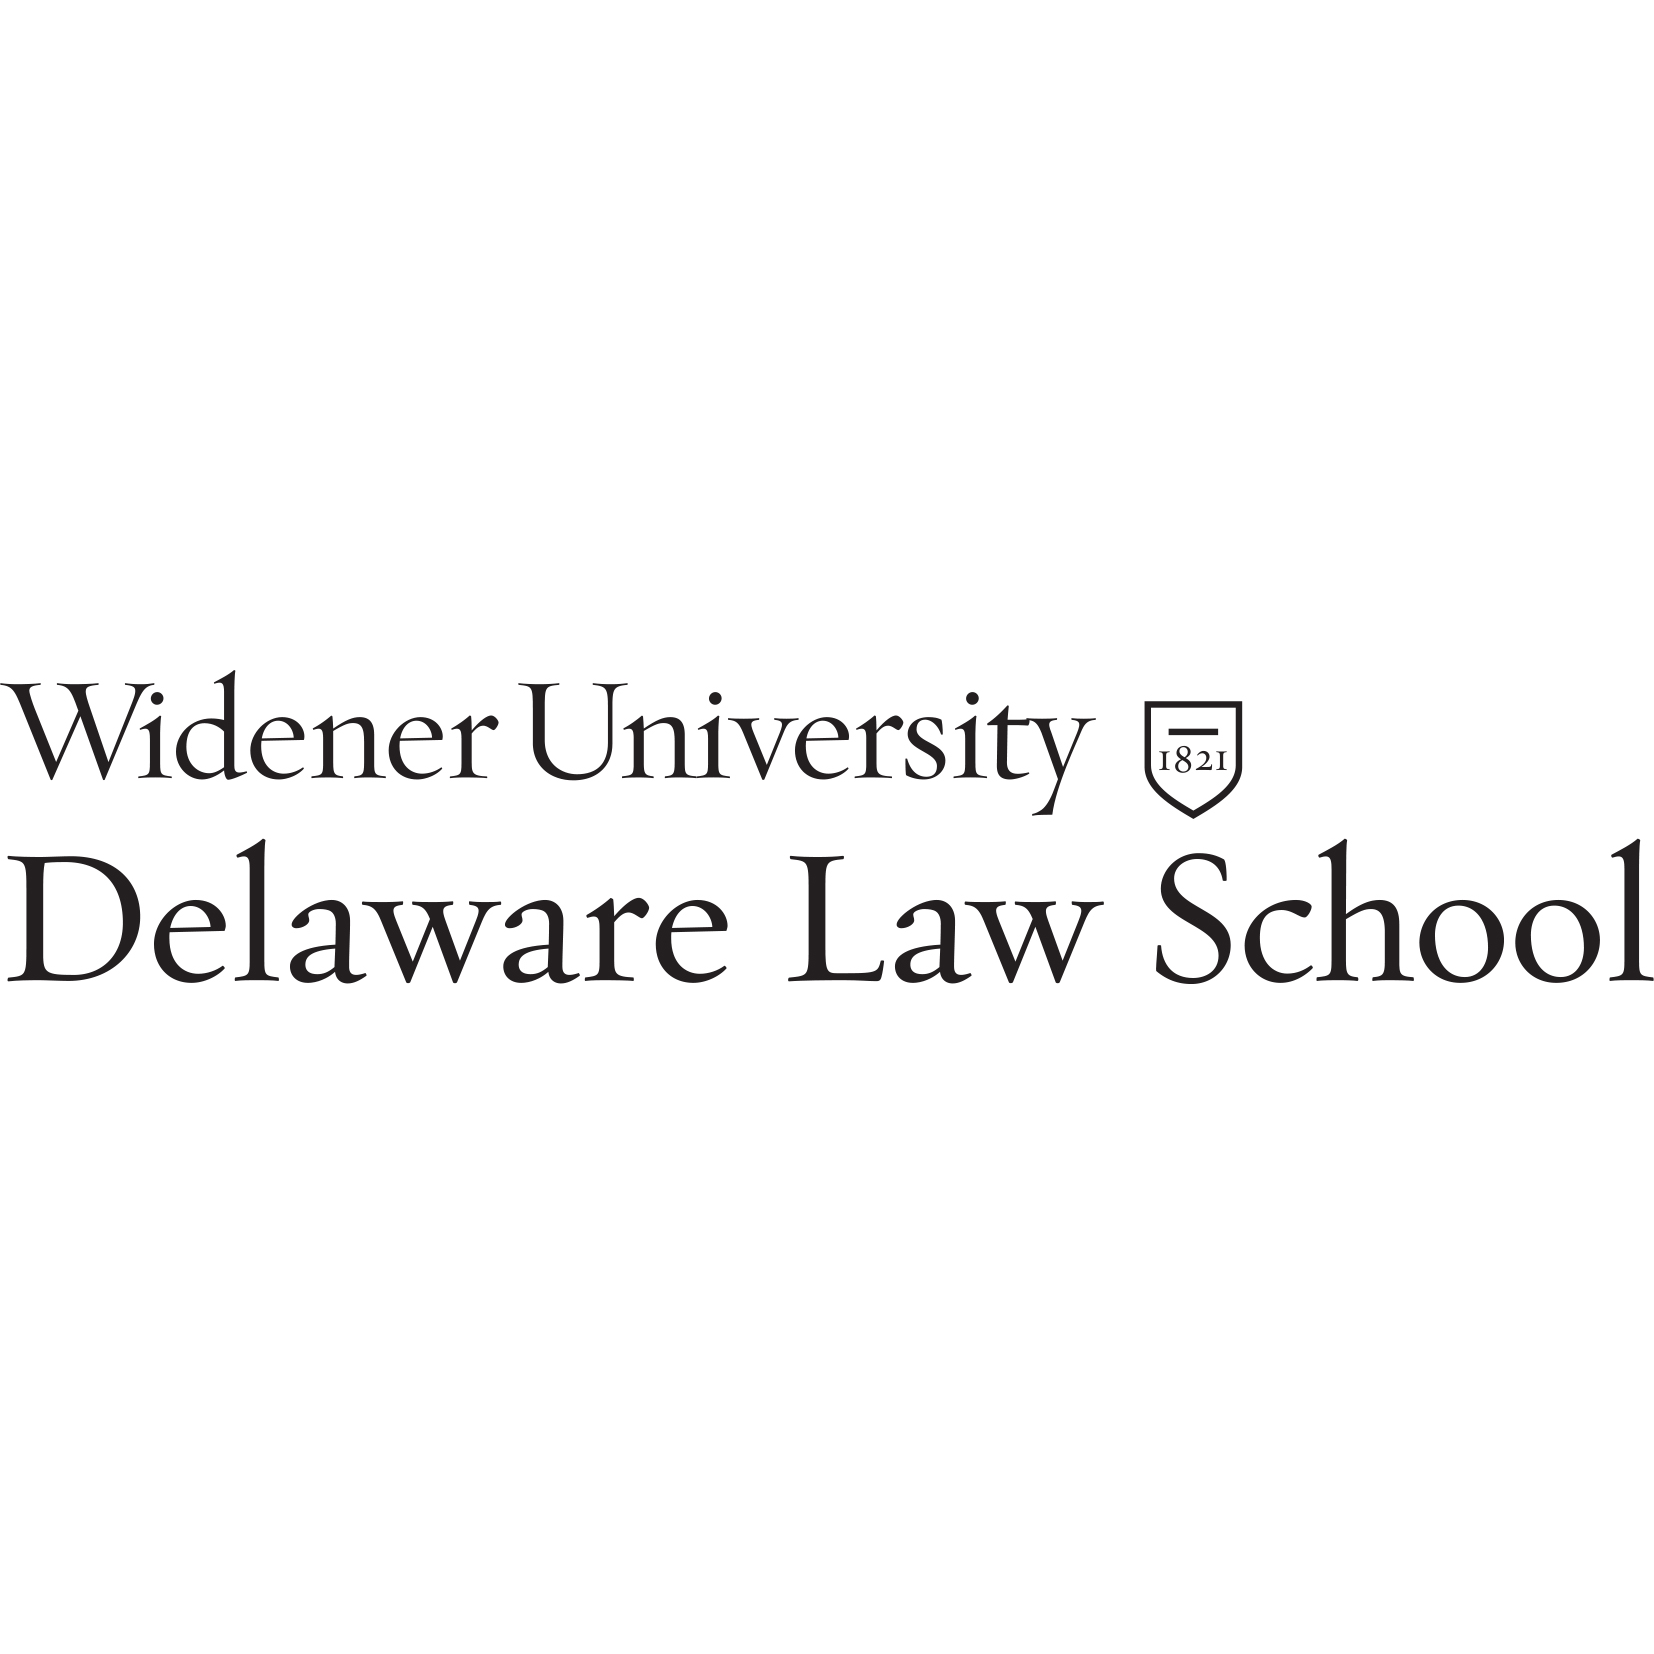 Widener University Delaware Law School